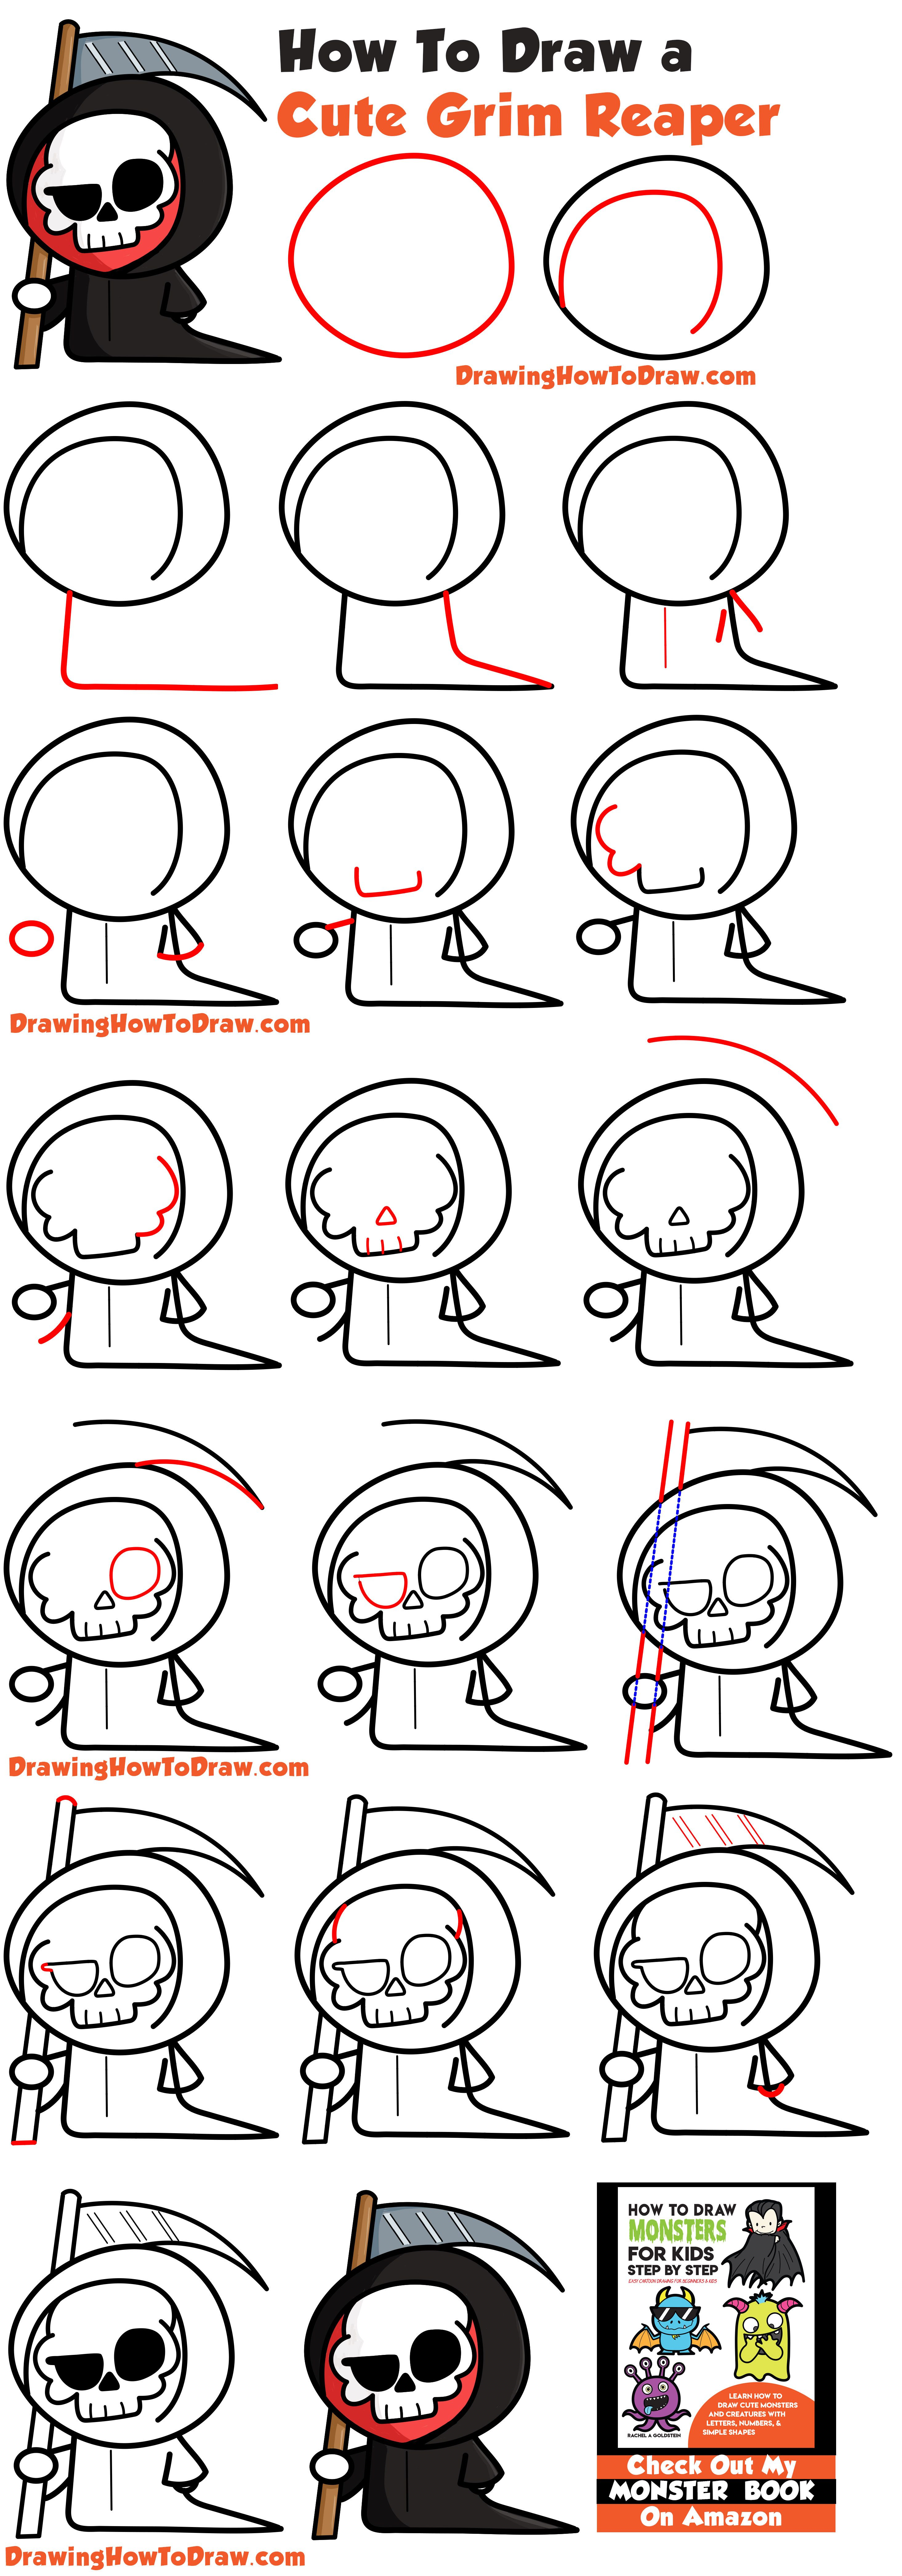 How To Draw A Cute Cartoon Grim Reaper Kawaii Chibi Easy Step By Step Drawing Tutorial For Kids How To Draw Step By Step Drawing Tutorials Drawing Tutorials For